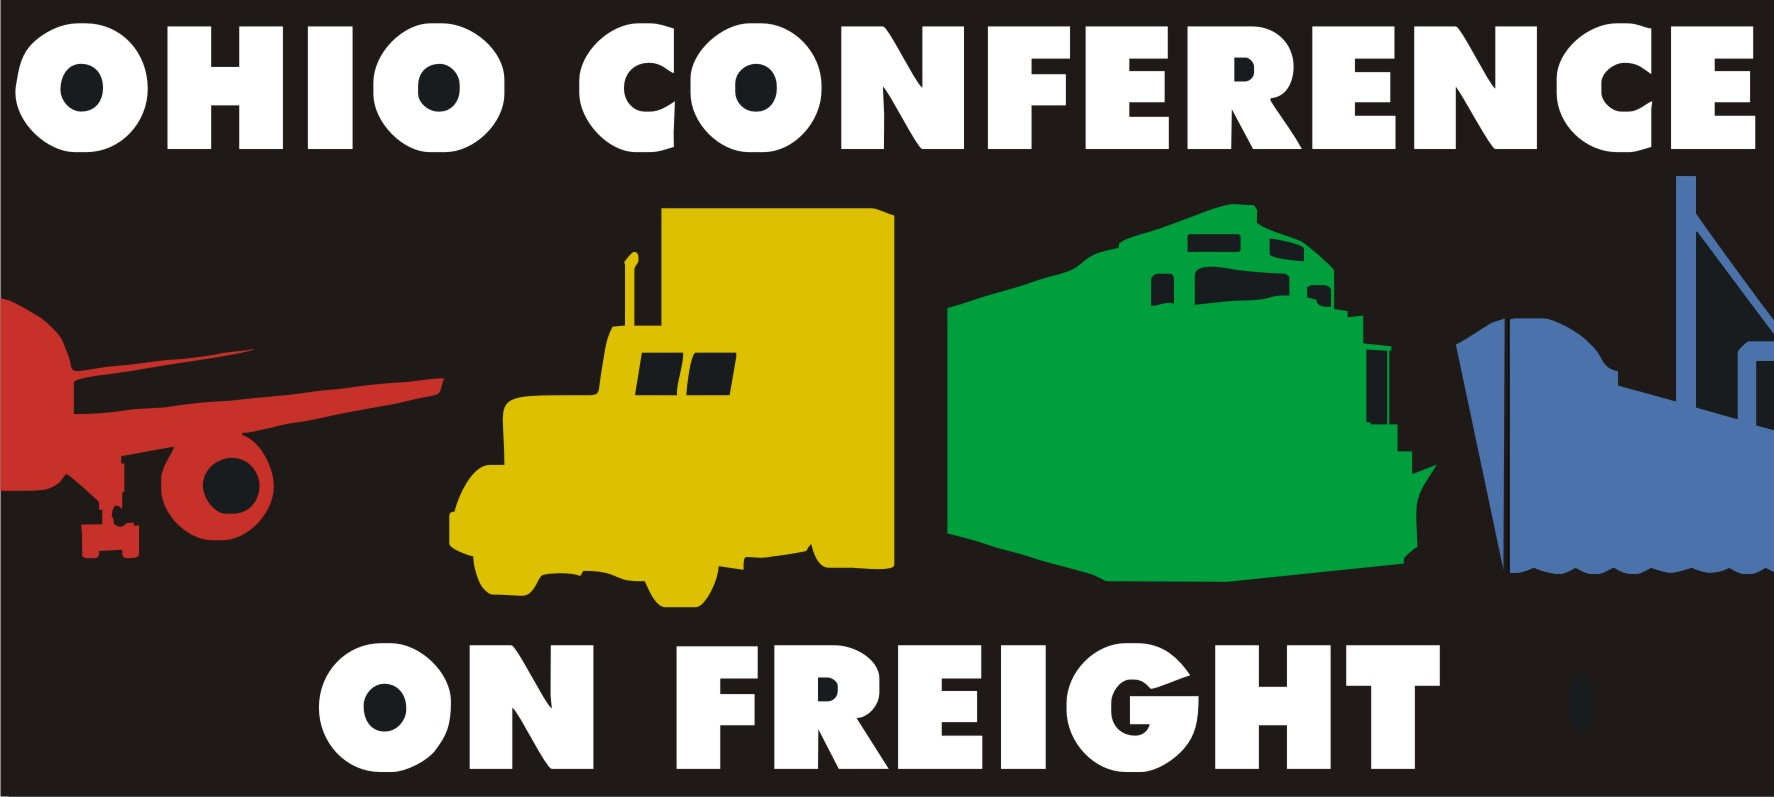 Ohio Conference on Freight 2014